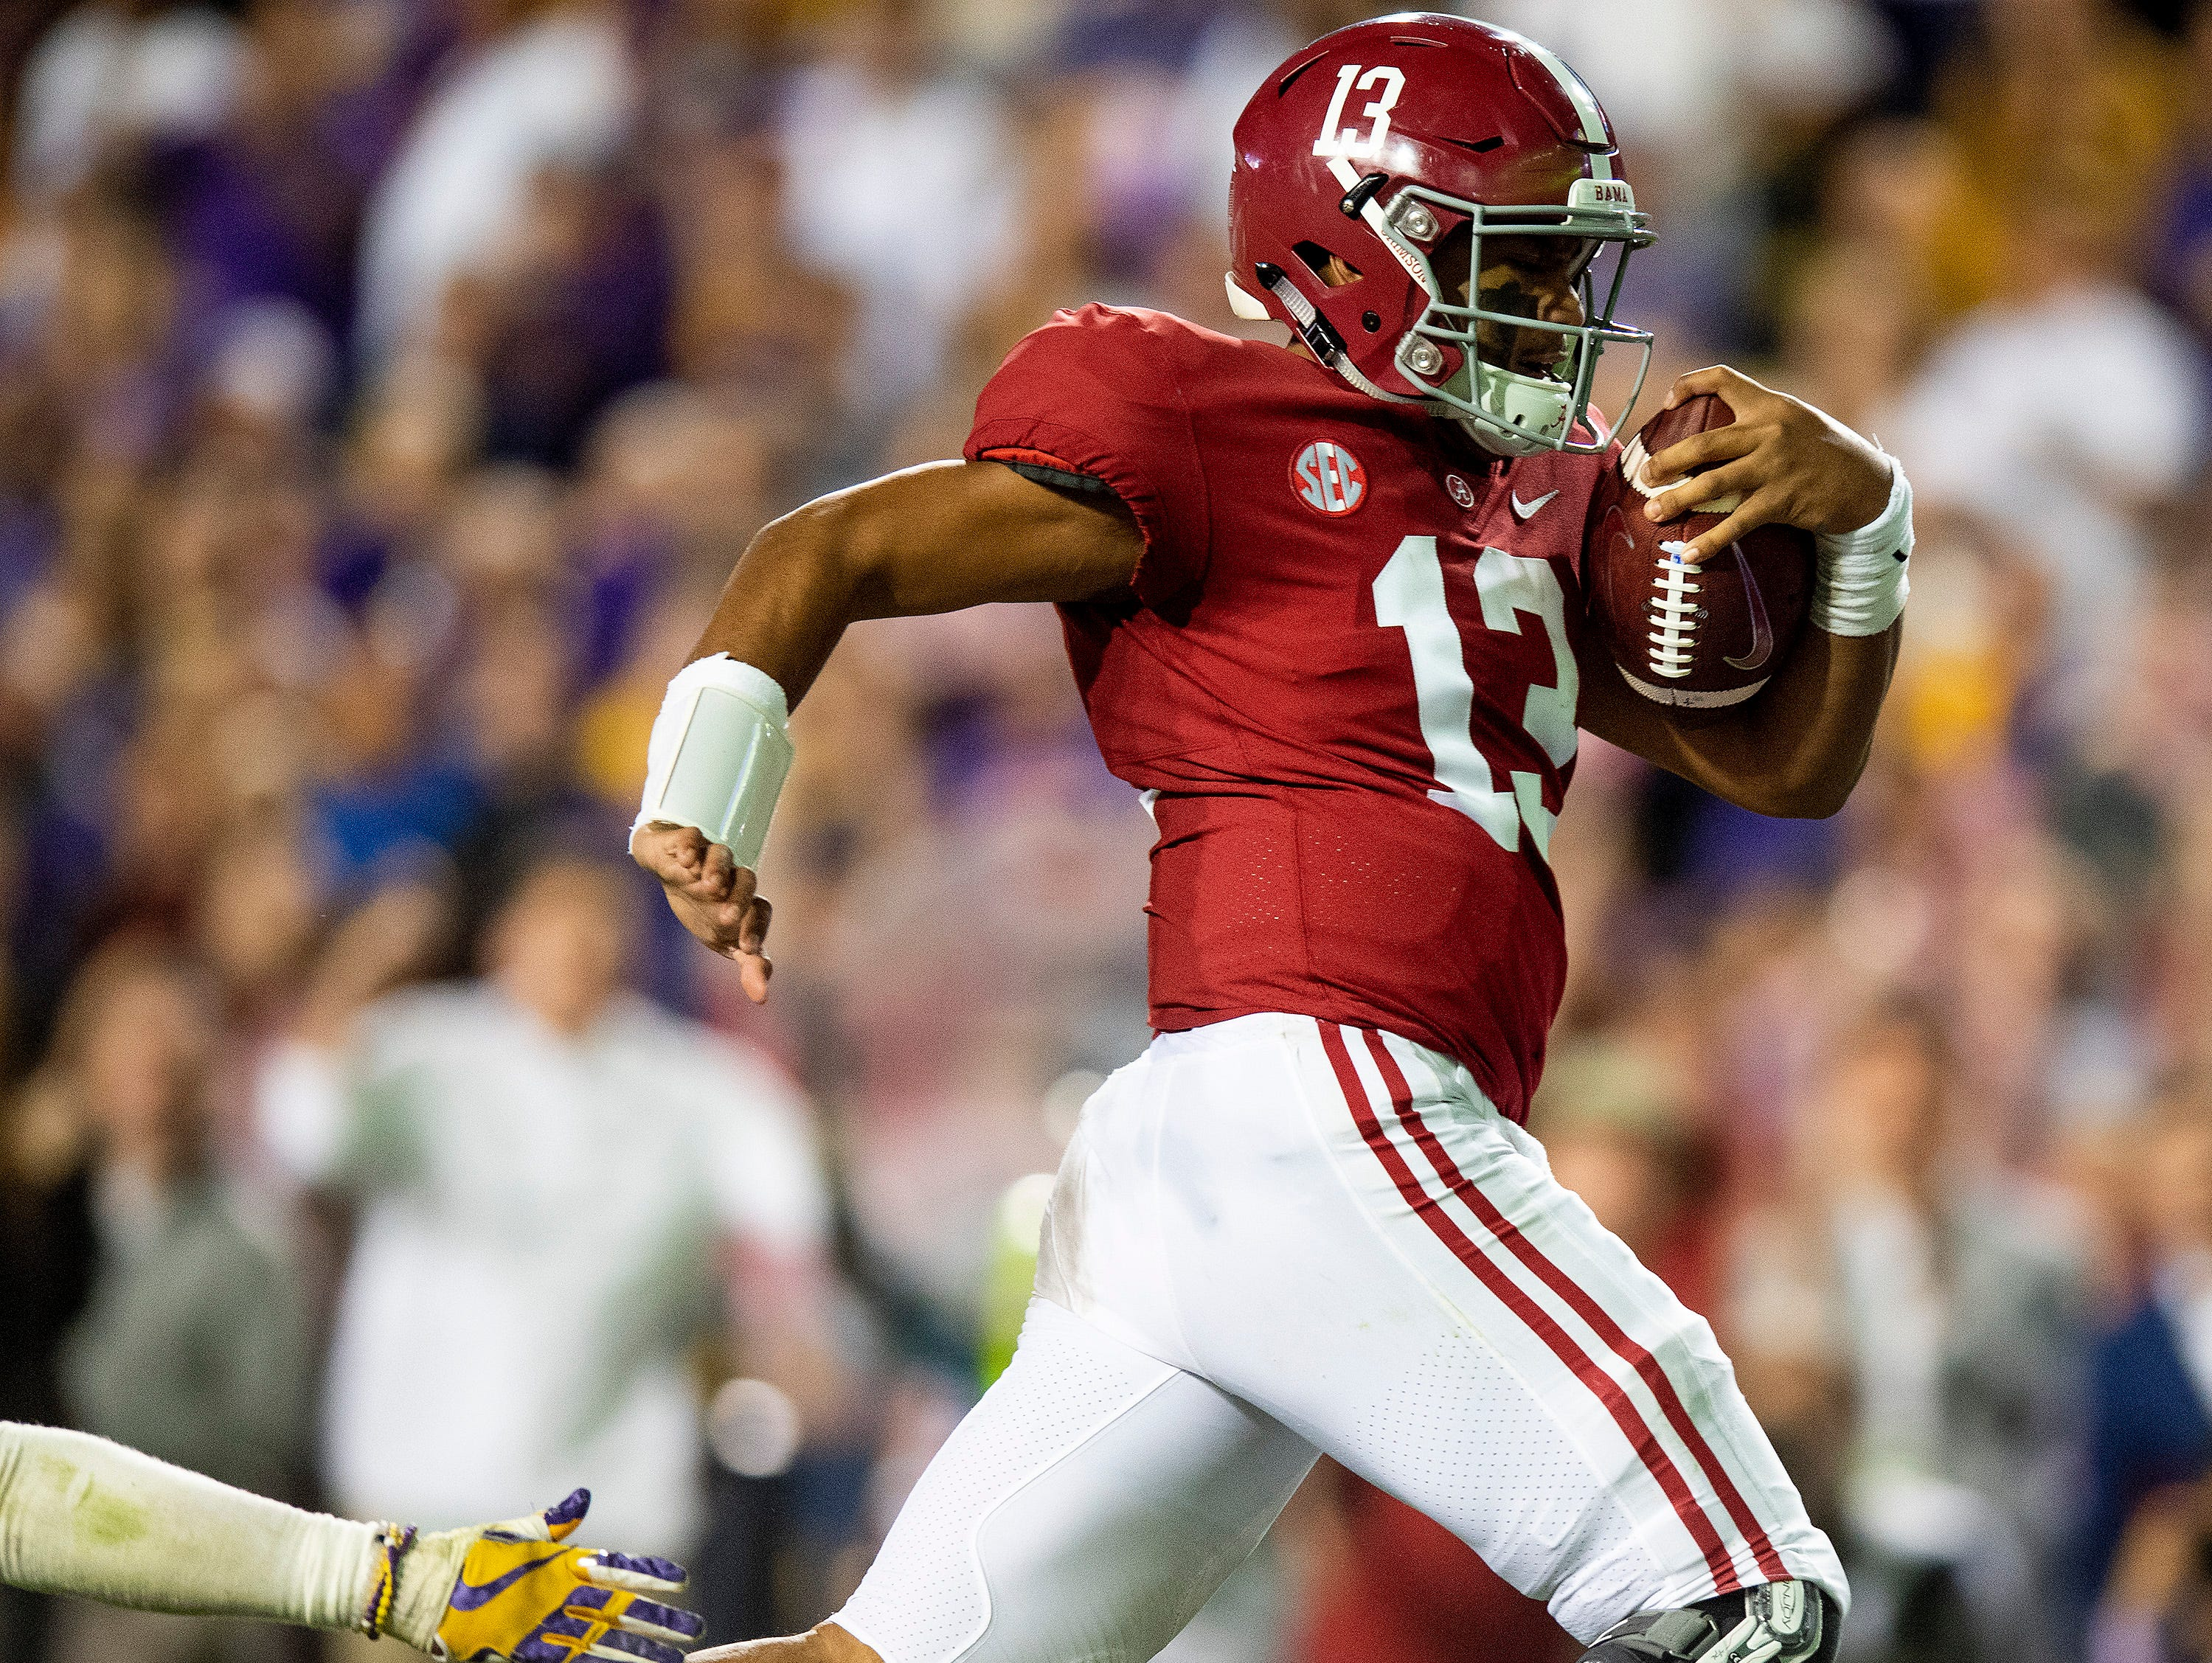 Alabama quarterback Tua Tagovailoa (13) carries for a touchdown against LSU in second half action at Tiger Stadium in Baton Rouge, La., on Saturday November 3, 2018.